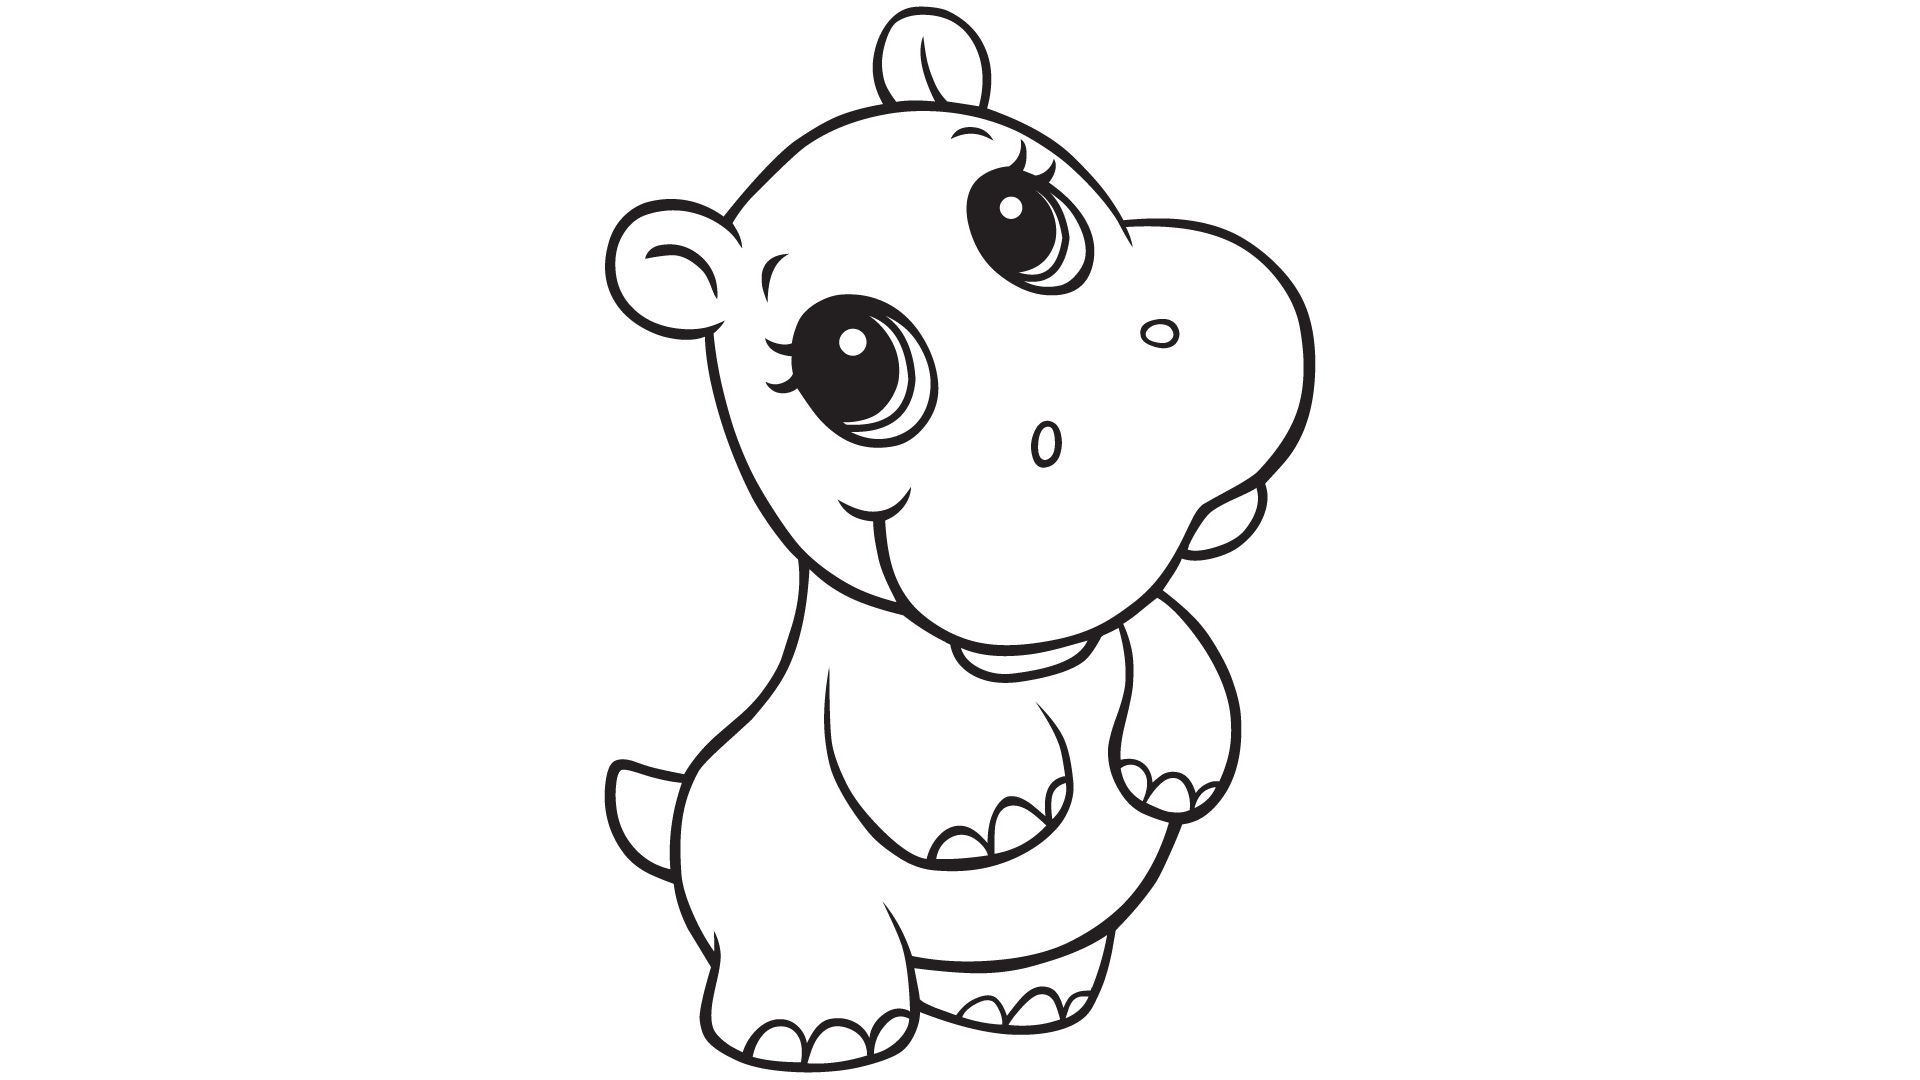 Hippopotamus Coloring Pages, Cliparts And Pictures: Cute Baby Hippos - Free Printable Hippo Coloring Pages